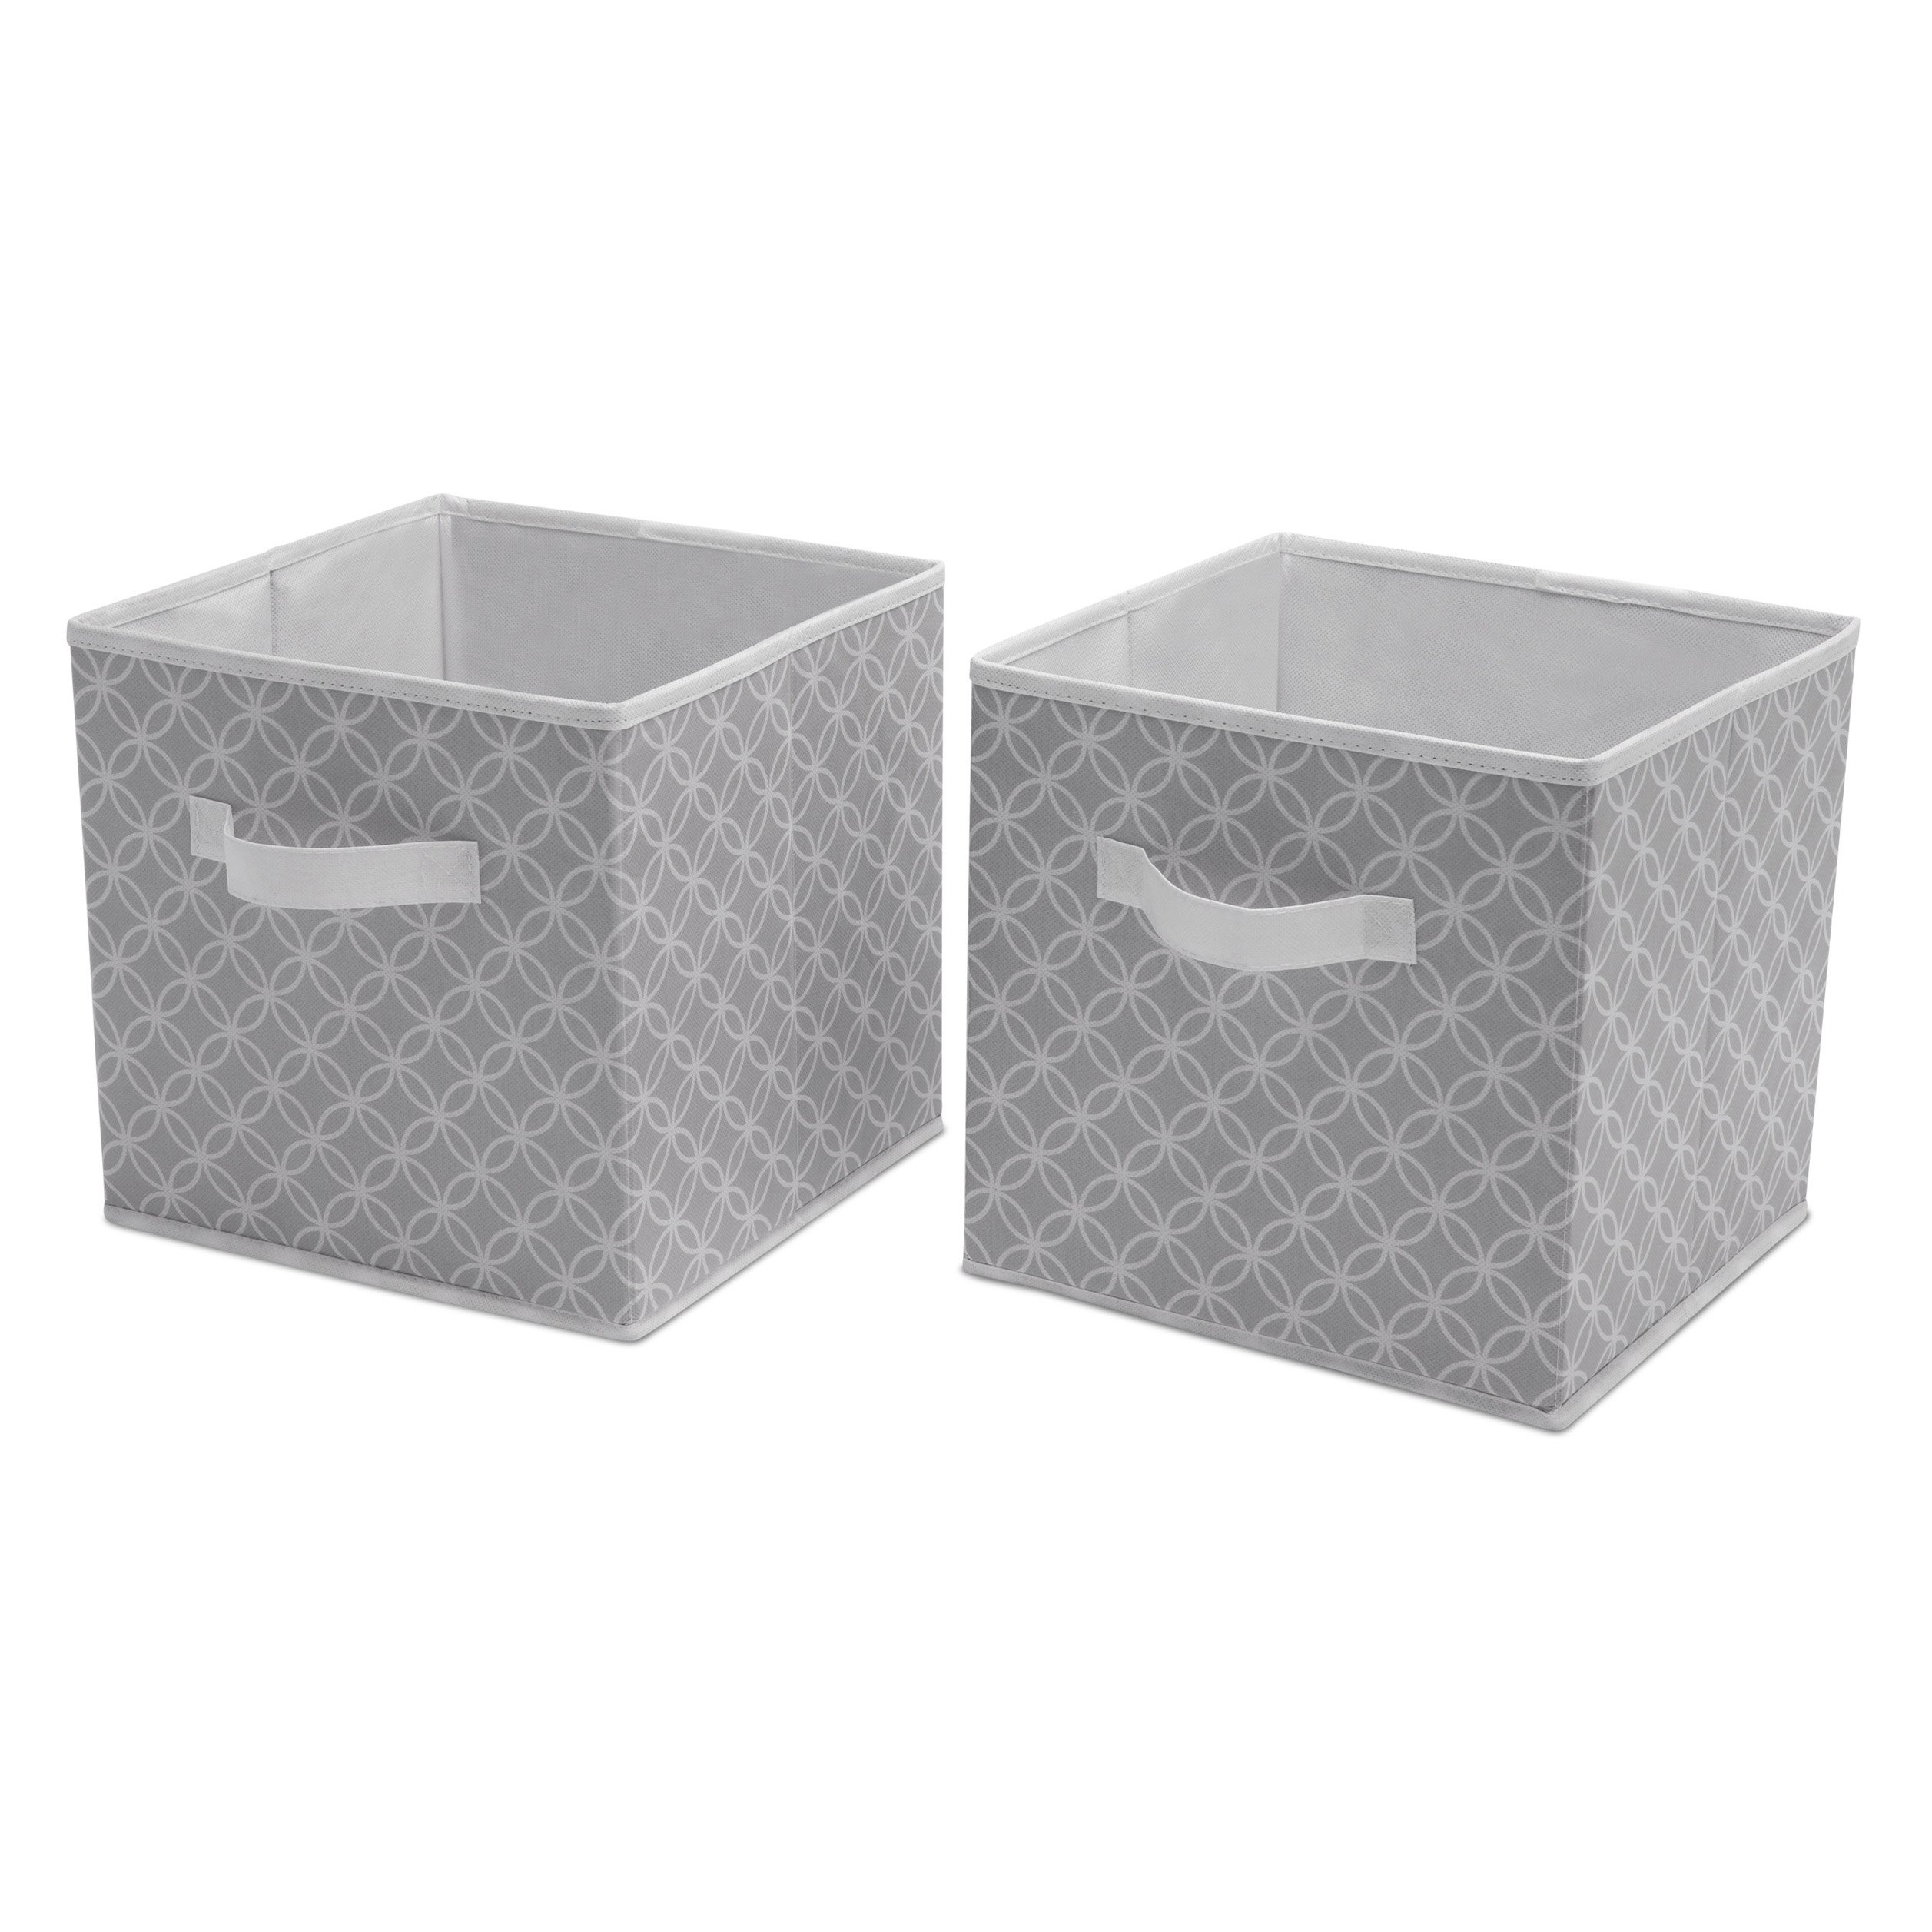 Delta Children Deluxe 2 Storage Water-Resistant Cubes, Infinity/Grey by Delta Children